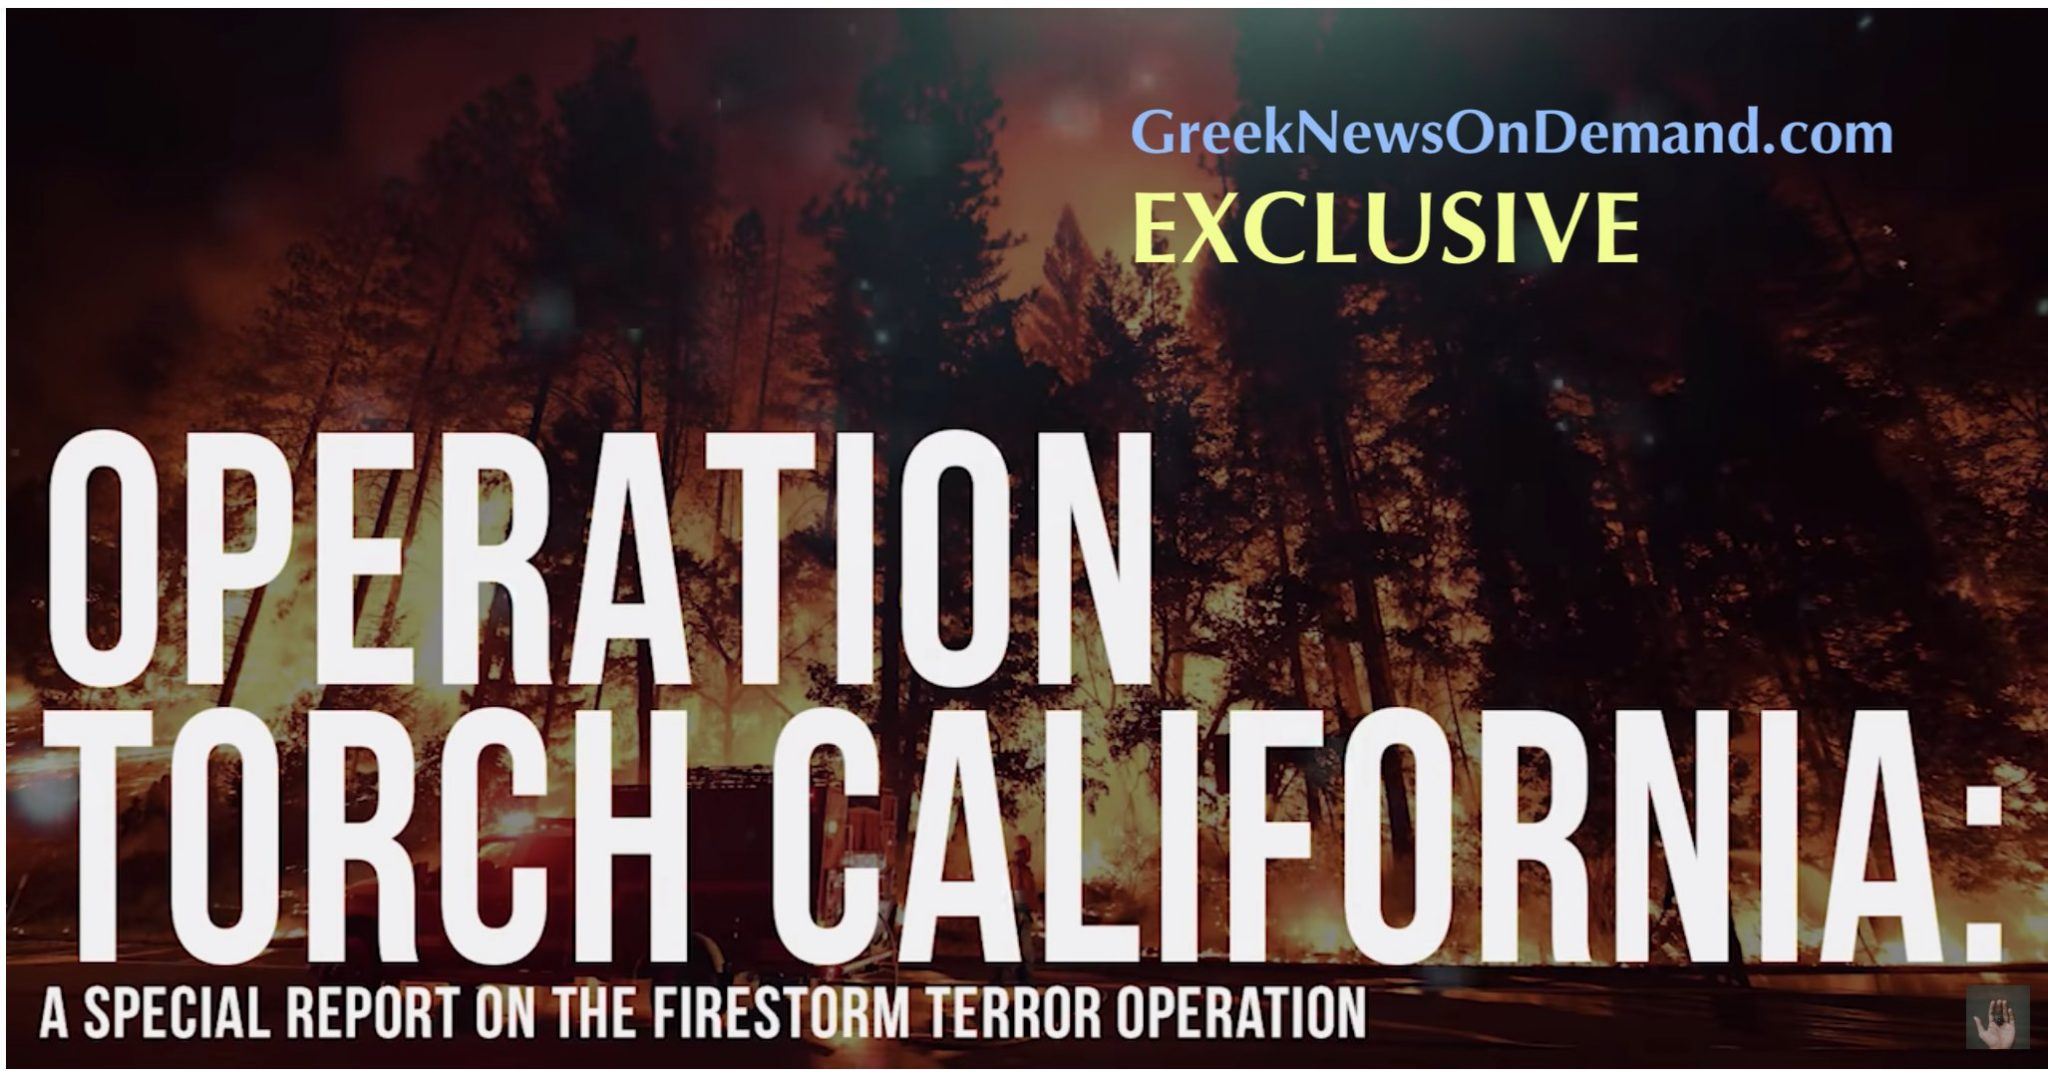 OPERATION TORCH CALIFORNIA: A Special Report on the Firestorm Terror Operation | #CaliforniaFires